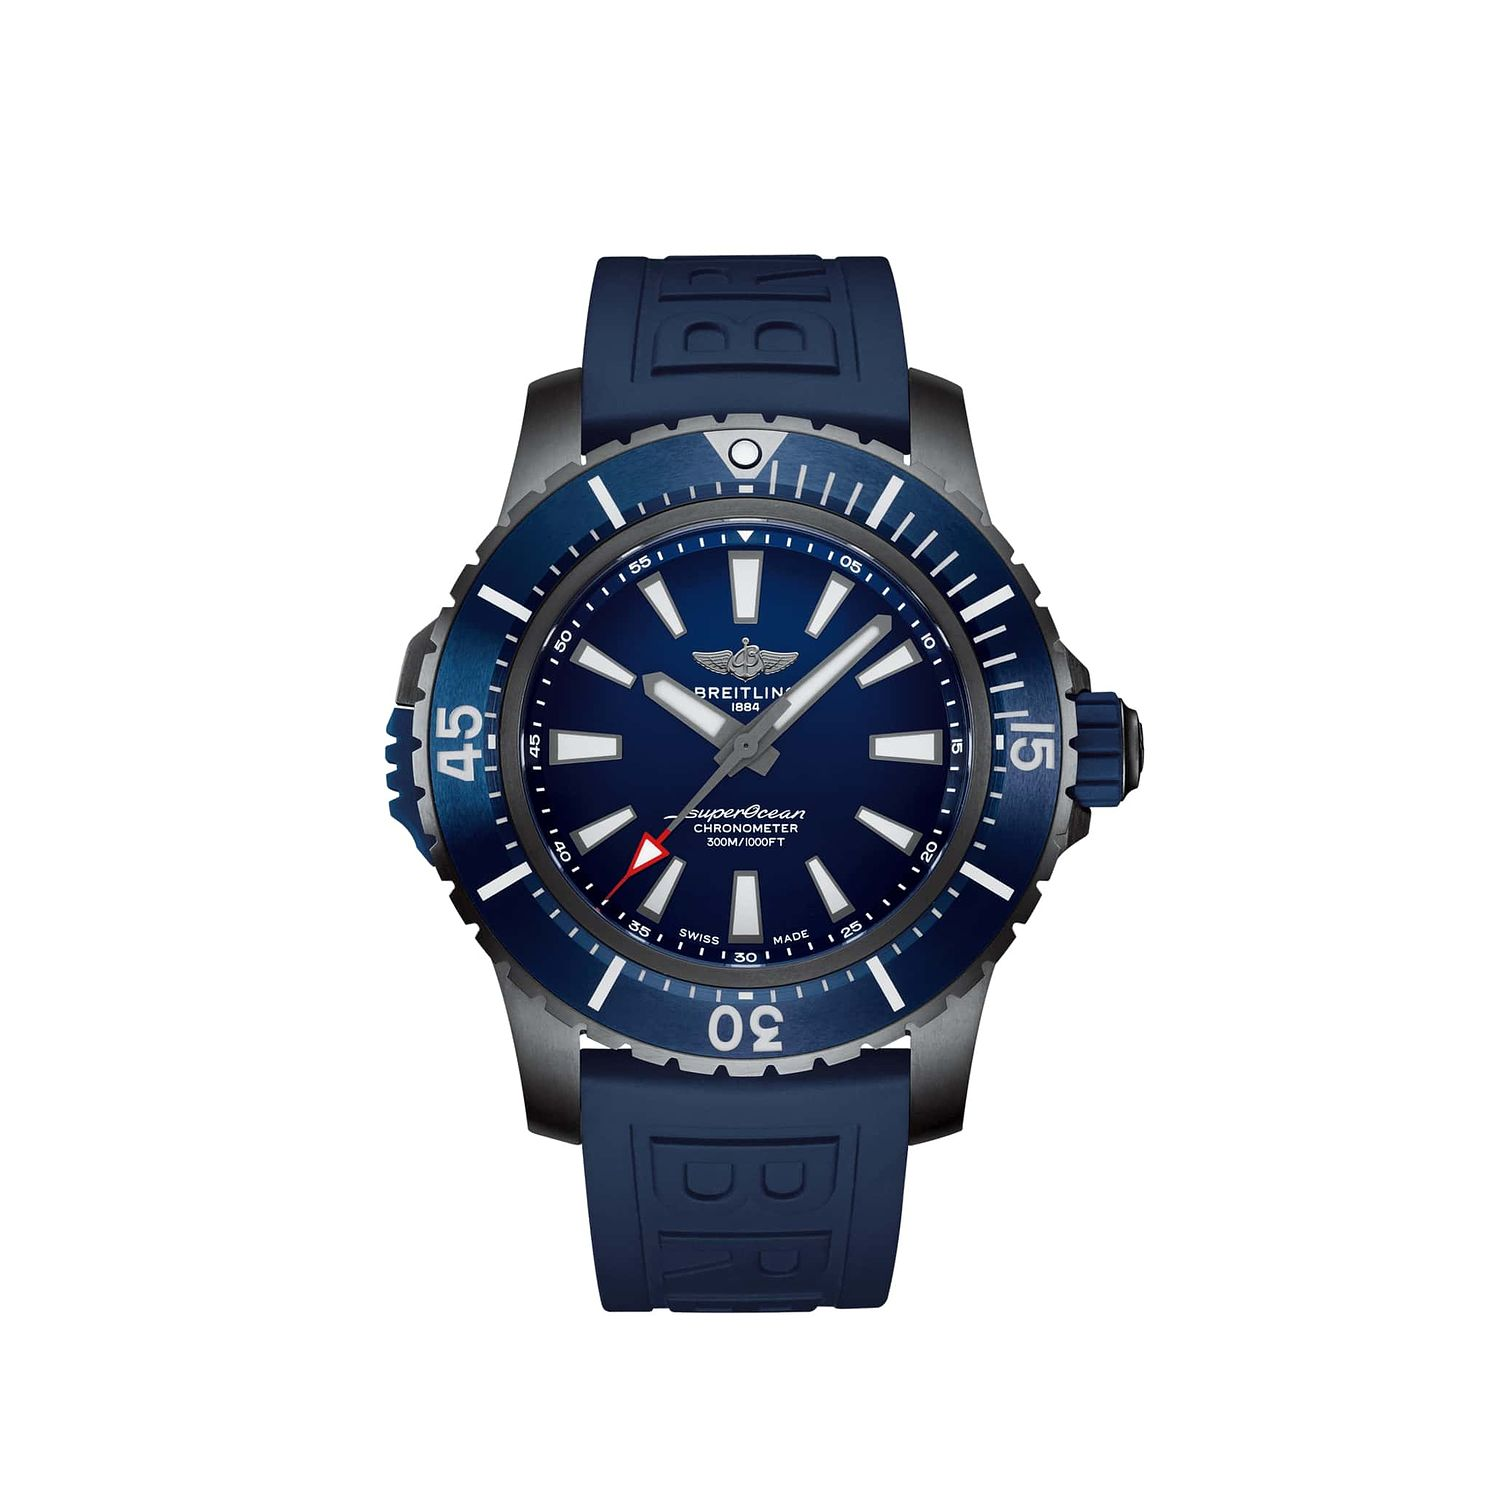 Breitling Superocean Men's Blue Rubber Strap Watch - Product number 4580095